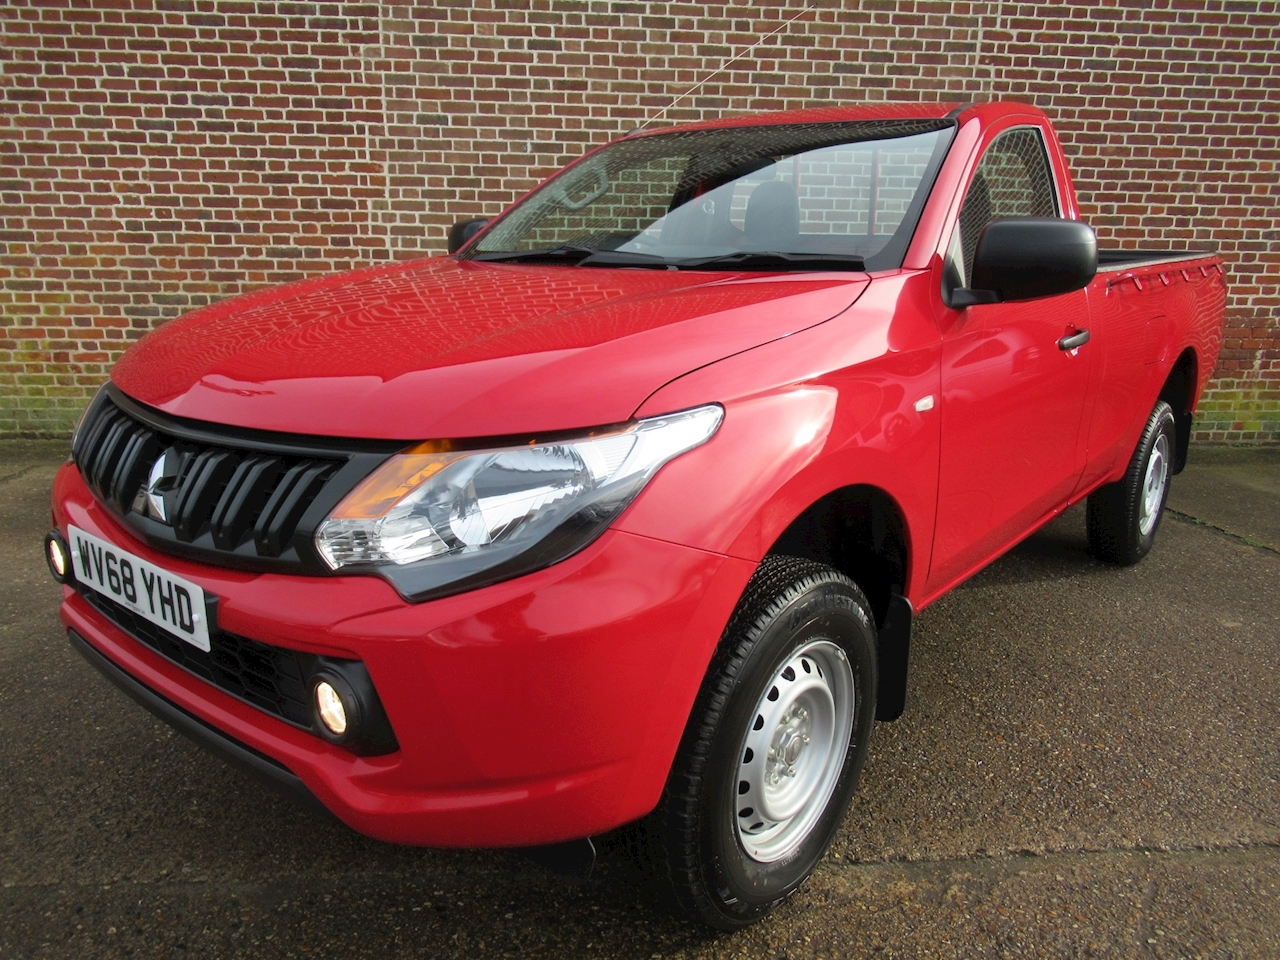 Mitsubishi L200 Di-D 4Wd 4Life S/C 2.4 2dr Pick-Up Manual Diesel